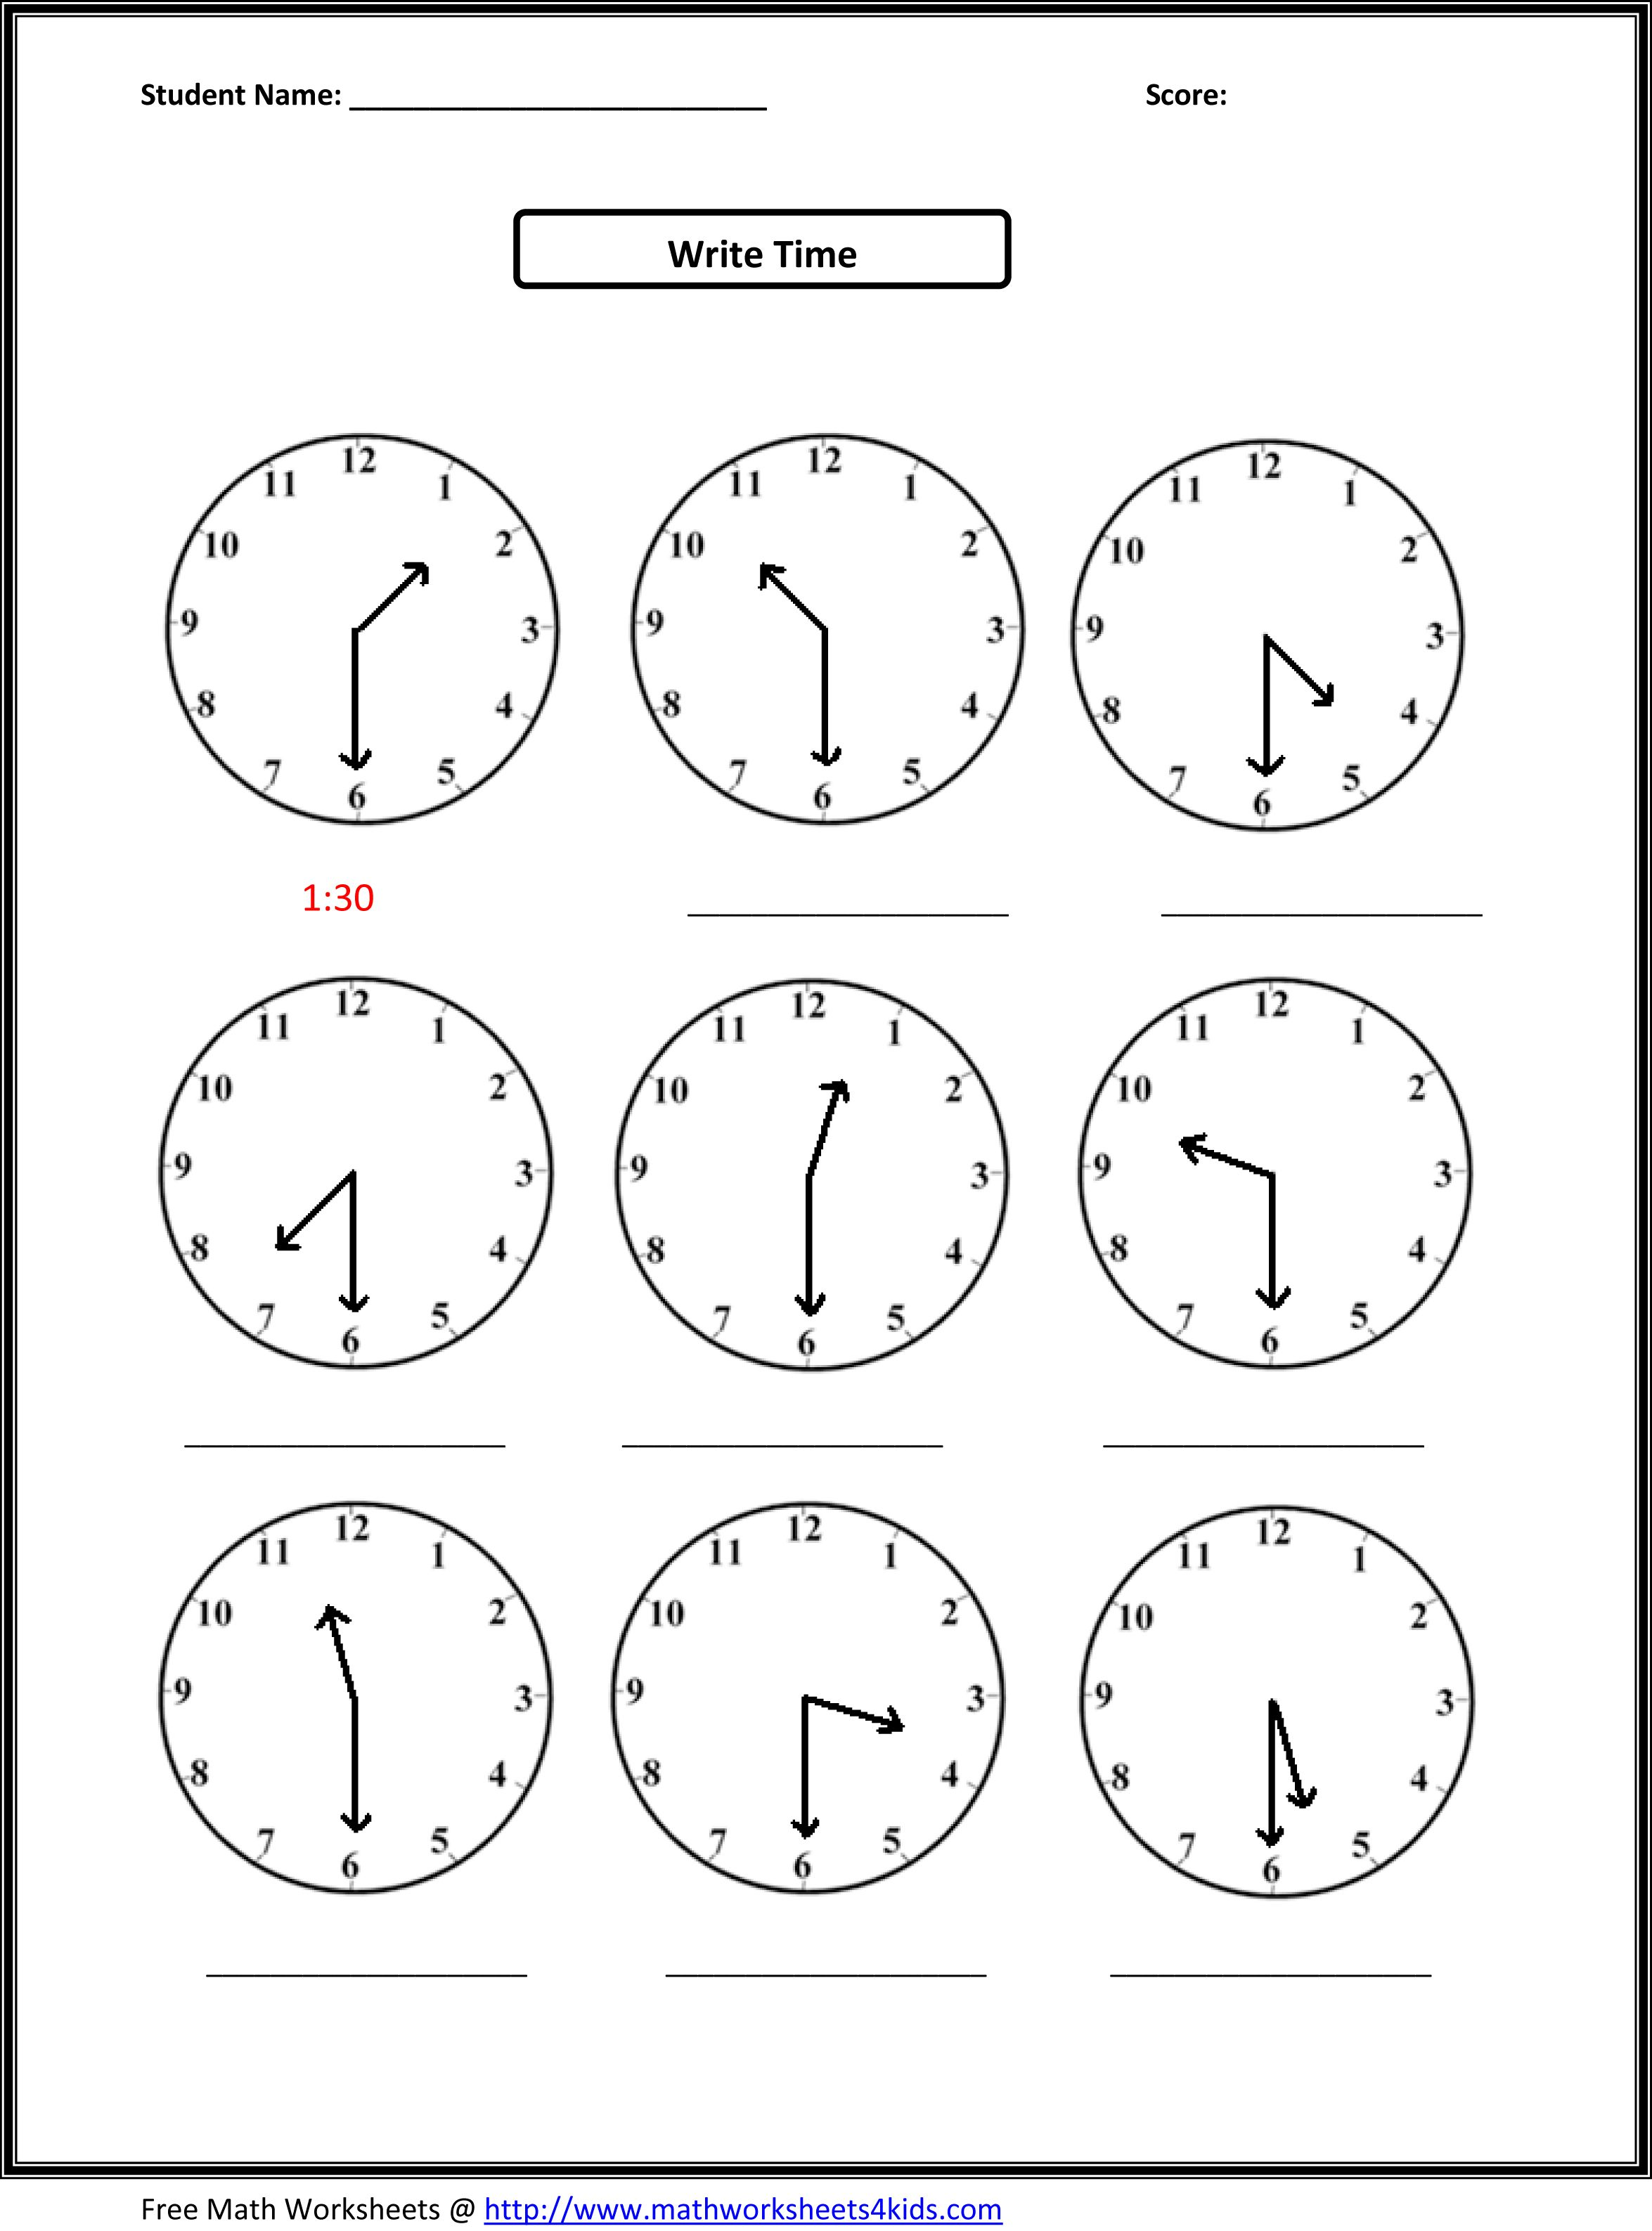 Weirdmailus  Outstanding Worksheet On Time For Grade   Reocurent With Fascinating Free Printable Telling Time Worksheets Nd Grade  Reocurent With Cool Adding And Subtracting Fractions And Mixed Numbers Worksheets Also Worksheet For Rd Grade In Addition Prealgebra With Pizzazz Worksheet Answers And Th Grade Math Worksheets Free As Well As St Grade Measurement Worksheets Additionally Swot Worksheet From Reocurentcom With Weirdmailus  Fascinating Worksheet On Time For Grade   Reocurent With Cool Free Printable Telling Time Worksheets Nd Grade  Reocurent And Outstanding Adding And Subtracting Fractions And Mixed Numbers Worksheets Also Worksheet For Rd Grade In Addition Prealgebra With Pizzazz Worksheet Answers From Reocurentcom